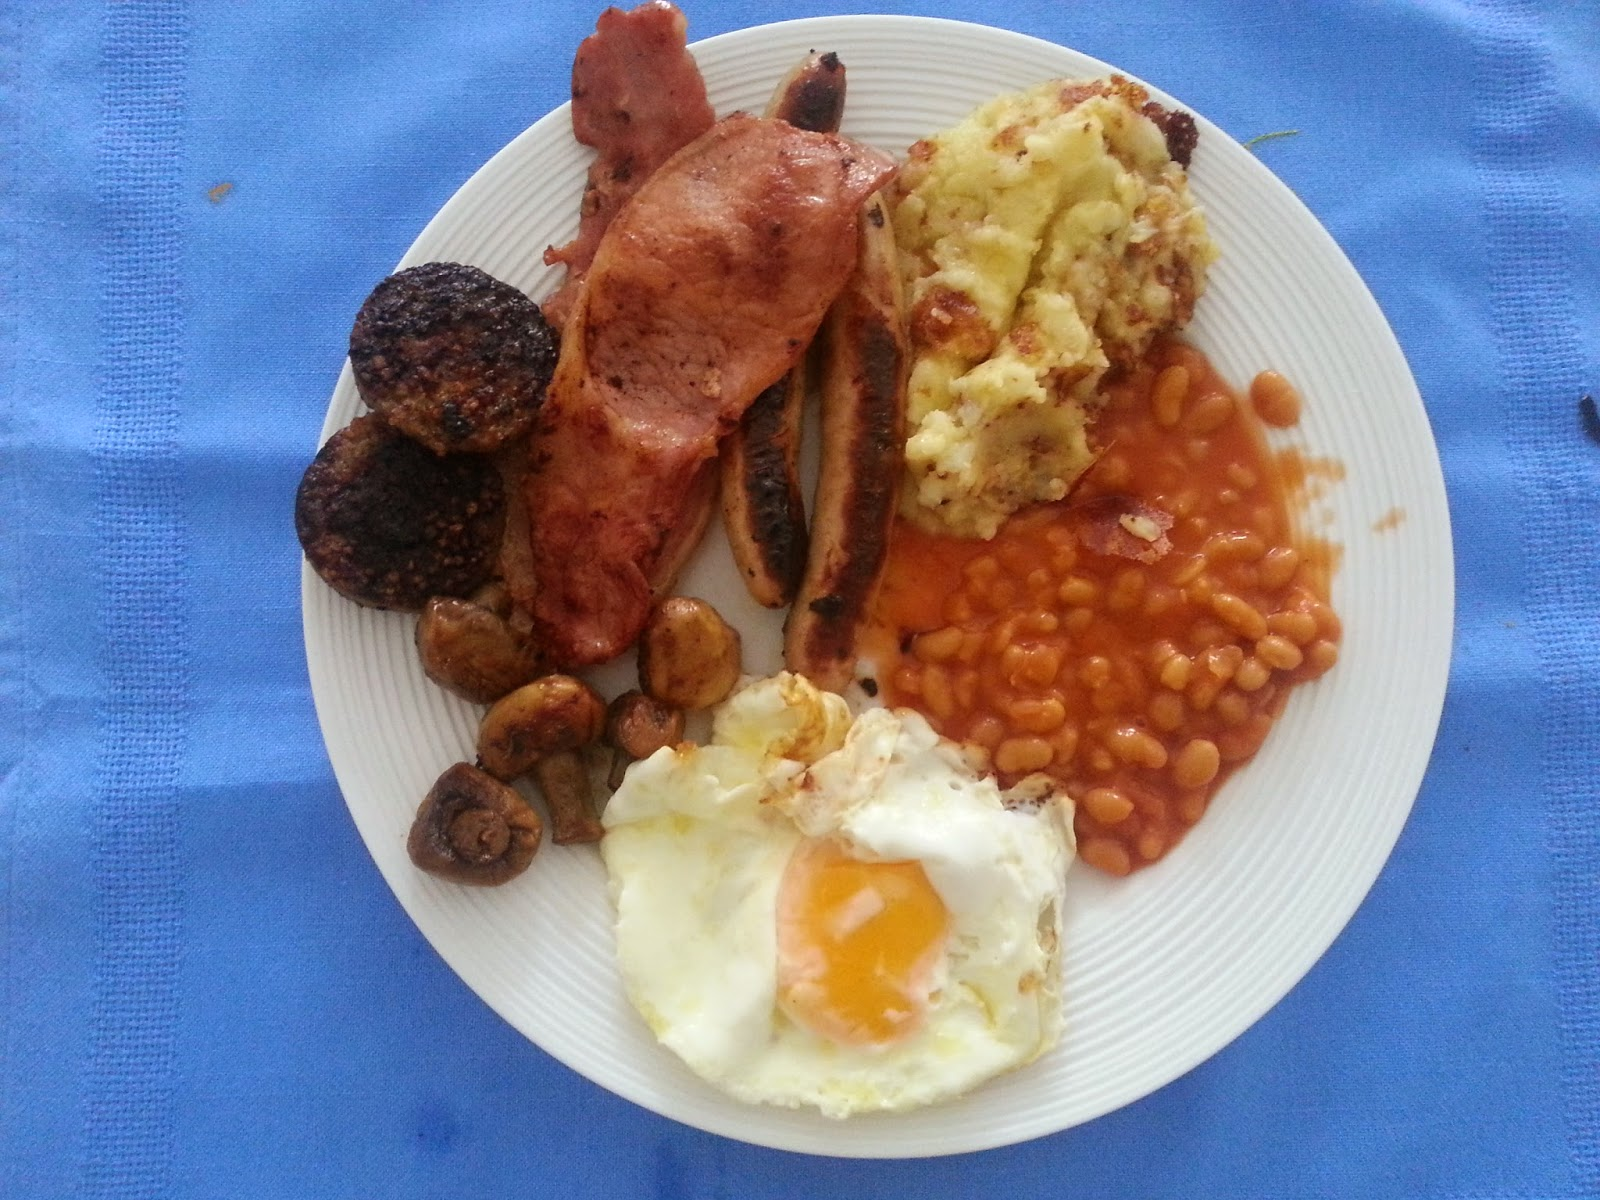 Sausages beans black pudding mushrooms fried potatoes bacon and fried potato on plate